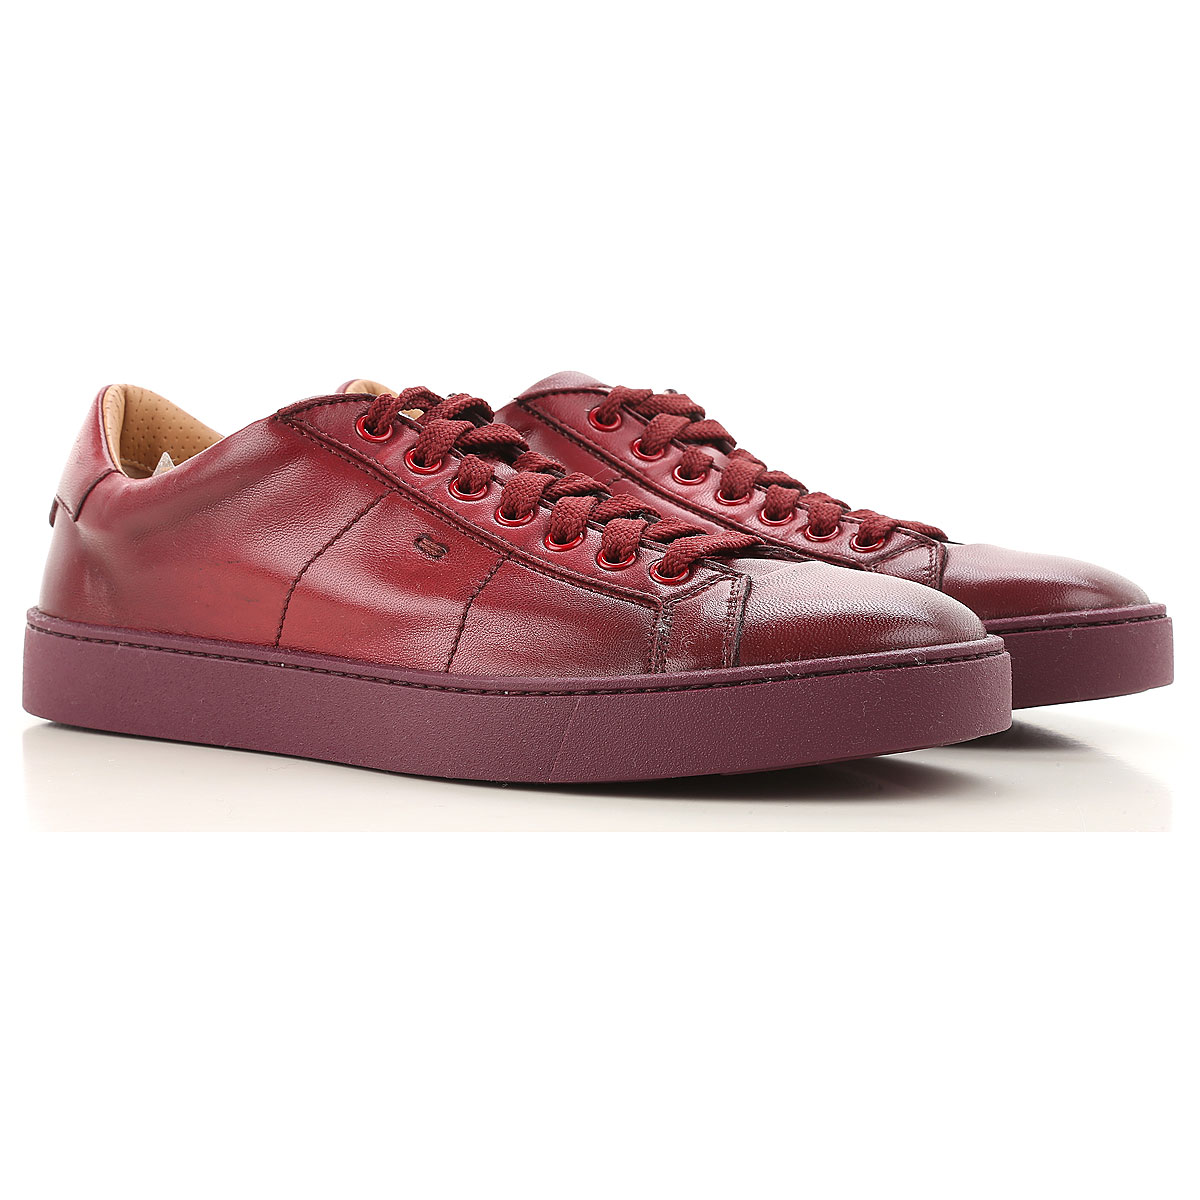 Santoni Sneakers for Men, Dark Red, Leather, 2019, 11 6 7.5